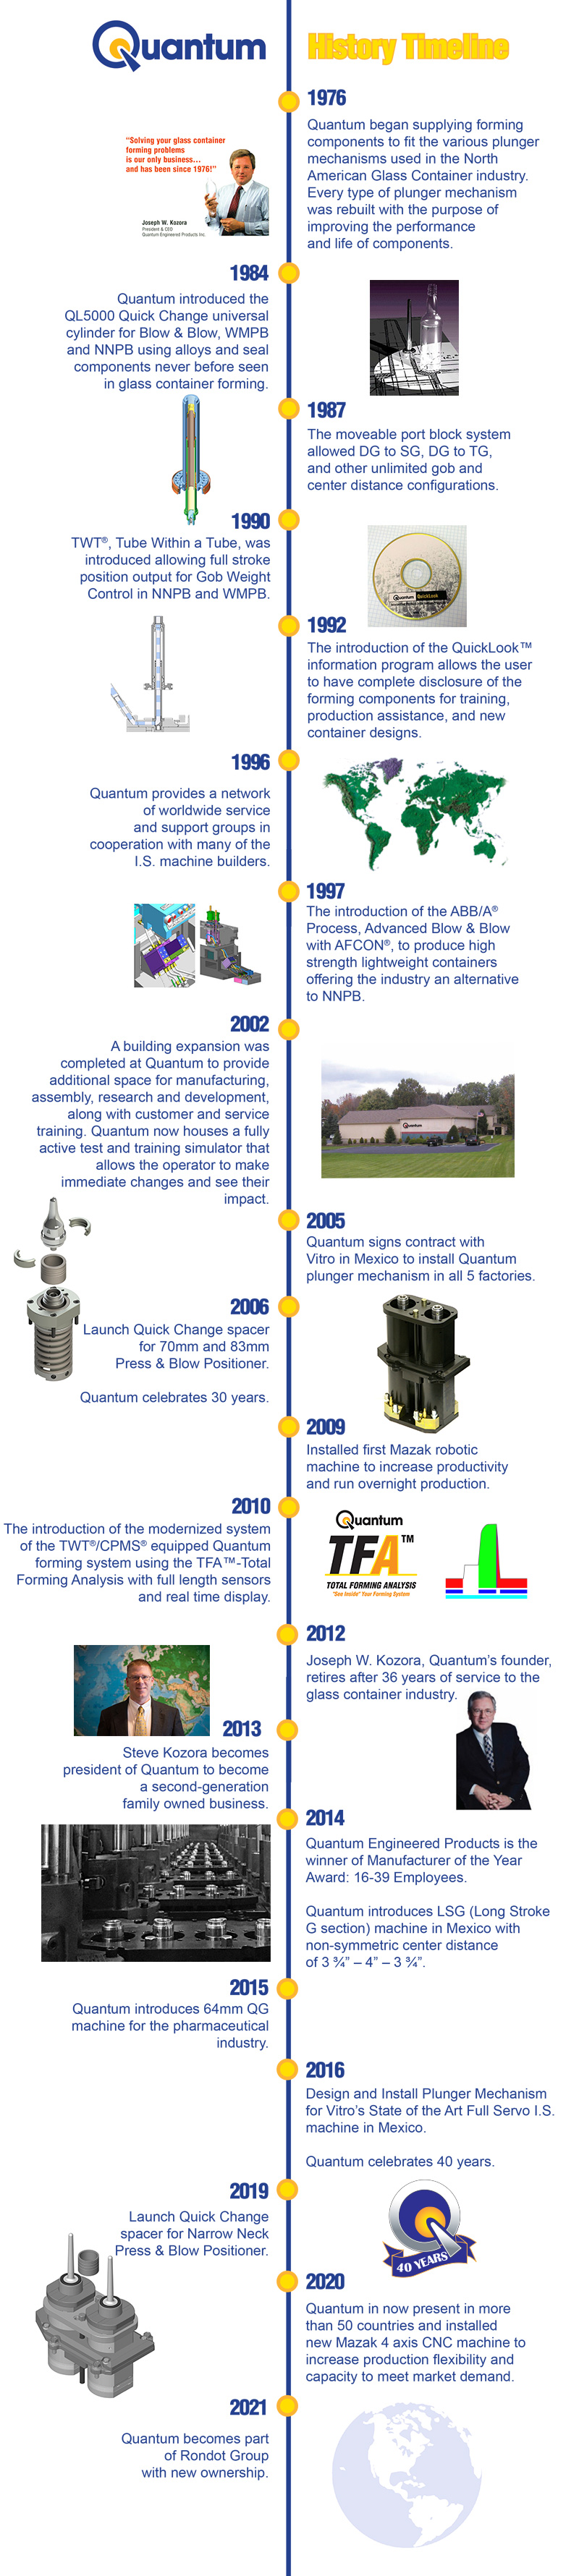 Quantum History 1976– Quantum began supplying forming components to fit the various plunger mechanisms used in the North American Glass Container industry. Every type of plunger mechanism was rebuilt with the purpose of improving the performance and life of components. 1984 – Quantum introduced the QL5000 Quick Change universal cylinder for Blow & Blow, WMPB and NNPB using alloys and seal components never before seen in glass container forming. 1987 – The moveable port block system allowed DG to SG, DG to TG, and other unlimited gob and center distance configurations. 1990 – TWT®, Tube Within a Tube, was introduced allowing full stroke position output for Gob Weight Control in NNPB and WMPB.  1992 – The introduction of the QuickLook™ information program allows the user to have complete disclosure of the forming components for training, production assistance, and new container designs. 1996– Quantum provides a network of worldwide service and support groups in cooperation with many of the I.S. machine builders. 1997– The introduction of the ABB/A® Process, Advanced Blow & Blow with AFCON®, to produce high strength lightweight containers offering the industry an alternative to NNPB. 2002– A building expansion was completed at Quantum to provide additional space for manufacturing, assembly, research and development, along with customer and service training. Quantum now houses a fully active test and training simulator that allows the operator to make immediate changes and see their impact.  2005– Quantum signs contract with Vitro in Mexico to install Quantum plunger mechanism in all 5 factories.  2006– Launch Quick Change spacer for 70mm- and 83mm- Press & Blow Positioner. Quantum celebrates 30 years. 2009– Installed first Mazak robotic machine to increase productivity and run overnight production. 2010– The introduction of the modernized system of the TWT®/CPMS® equipped Quantum forming system using the TFA™-Total Forming Analysis with full length sensors and real tim